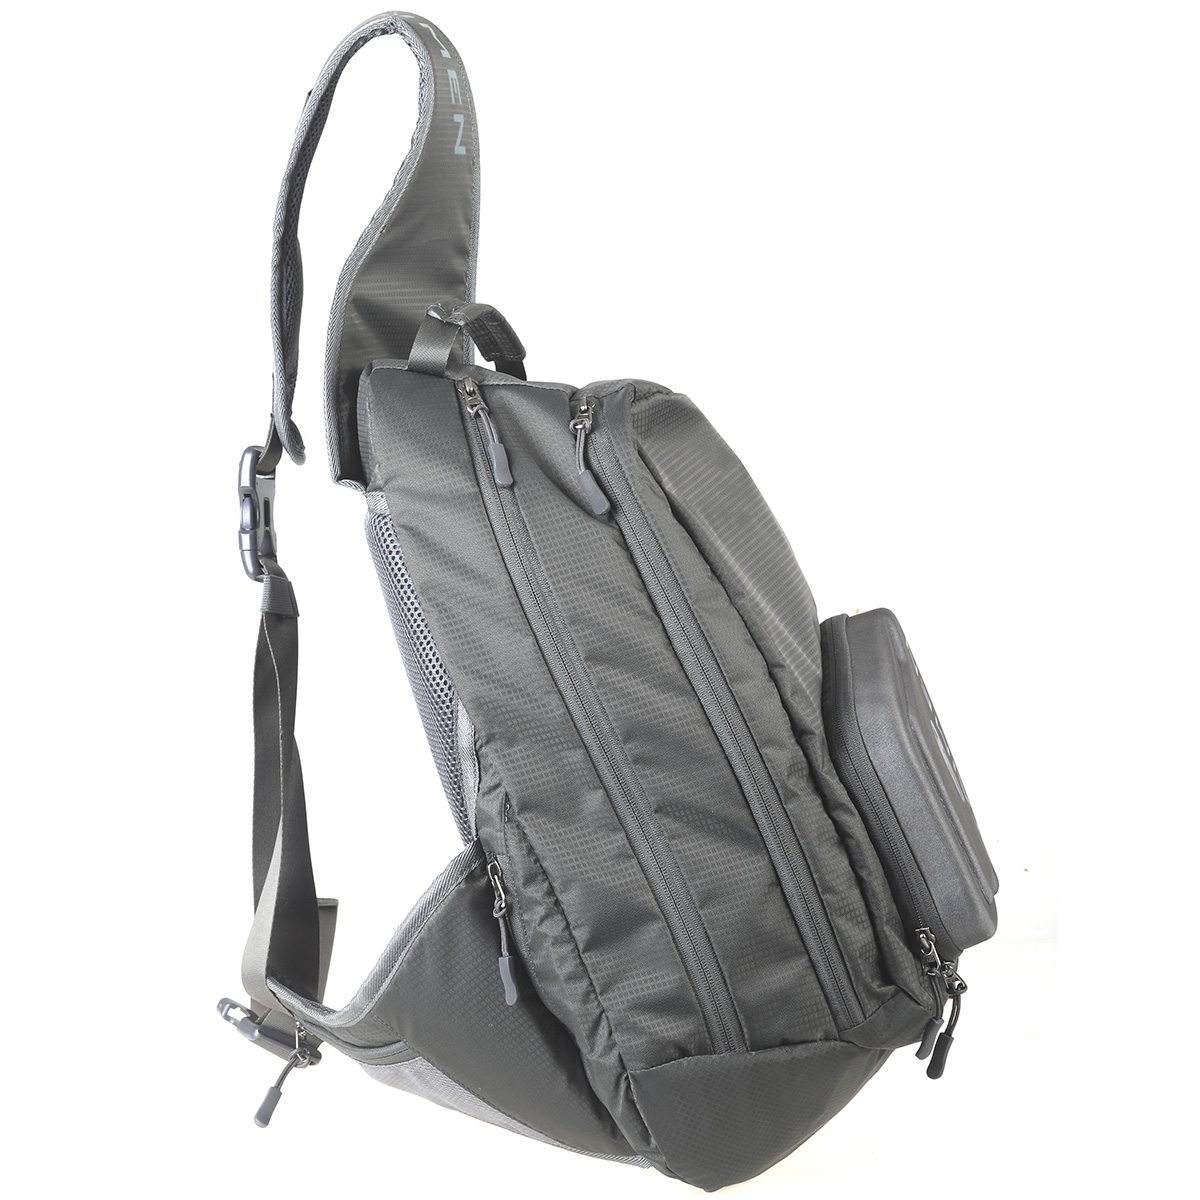 Taimen River Sling Bag